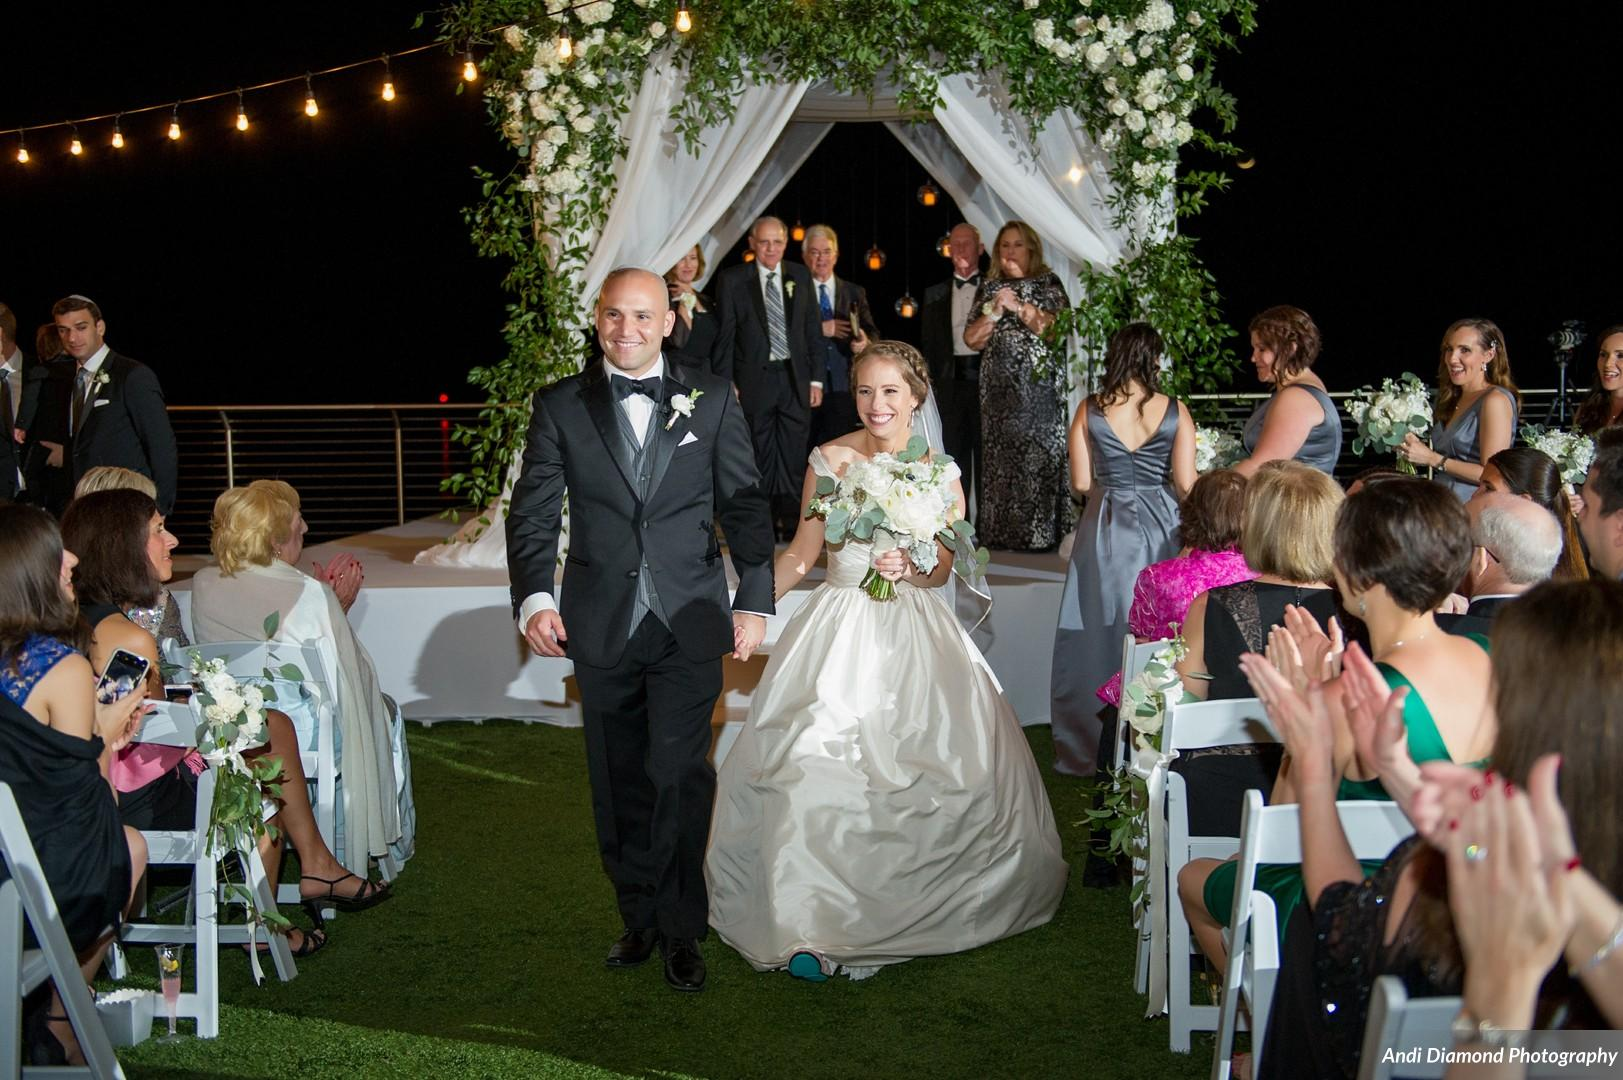 Beneath the chuppah, the couple exchanged vows in a traditional Jewish ceremony, lit by a canopy of bistro lights.